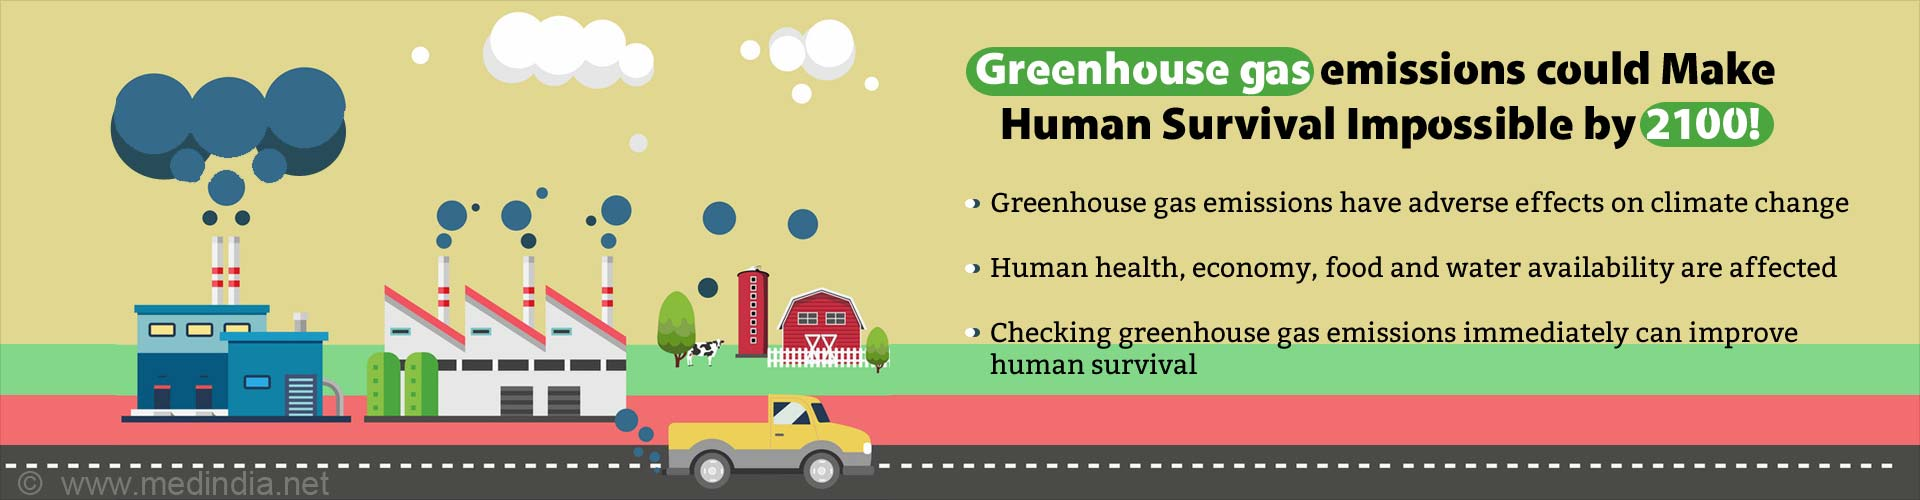 Greenhouse gas emissions could make human survival impossible by 2100. Greenhouse gas emissions have adverse effects on climate change. Human health, economy, food and water availability are affected. Checking greenhouse gas emissions immediately can improve human survival.